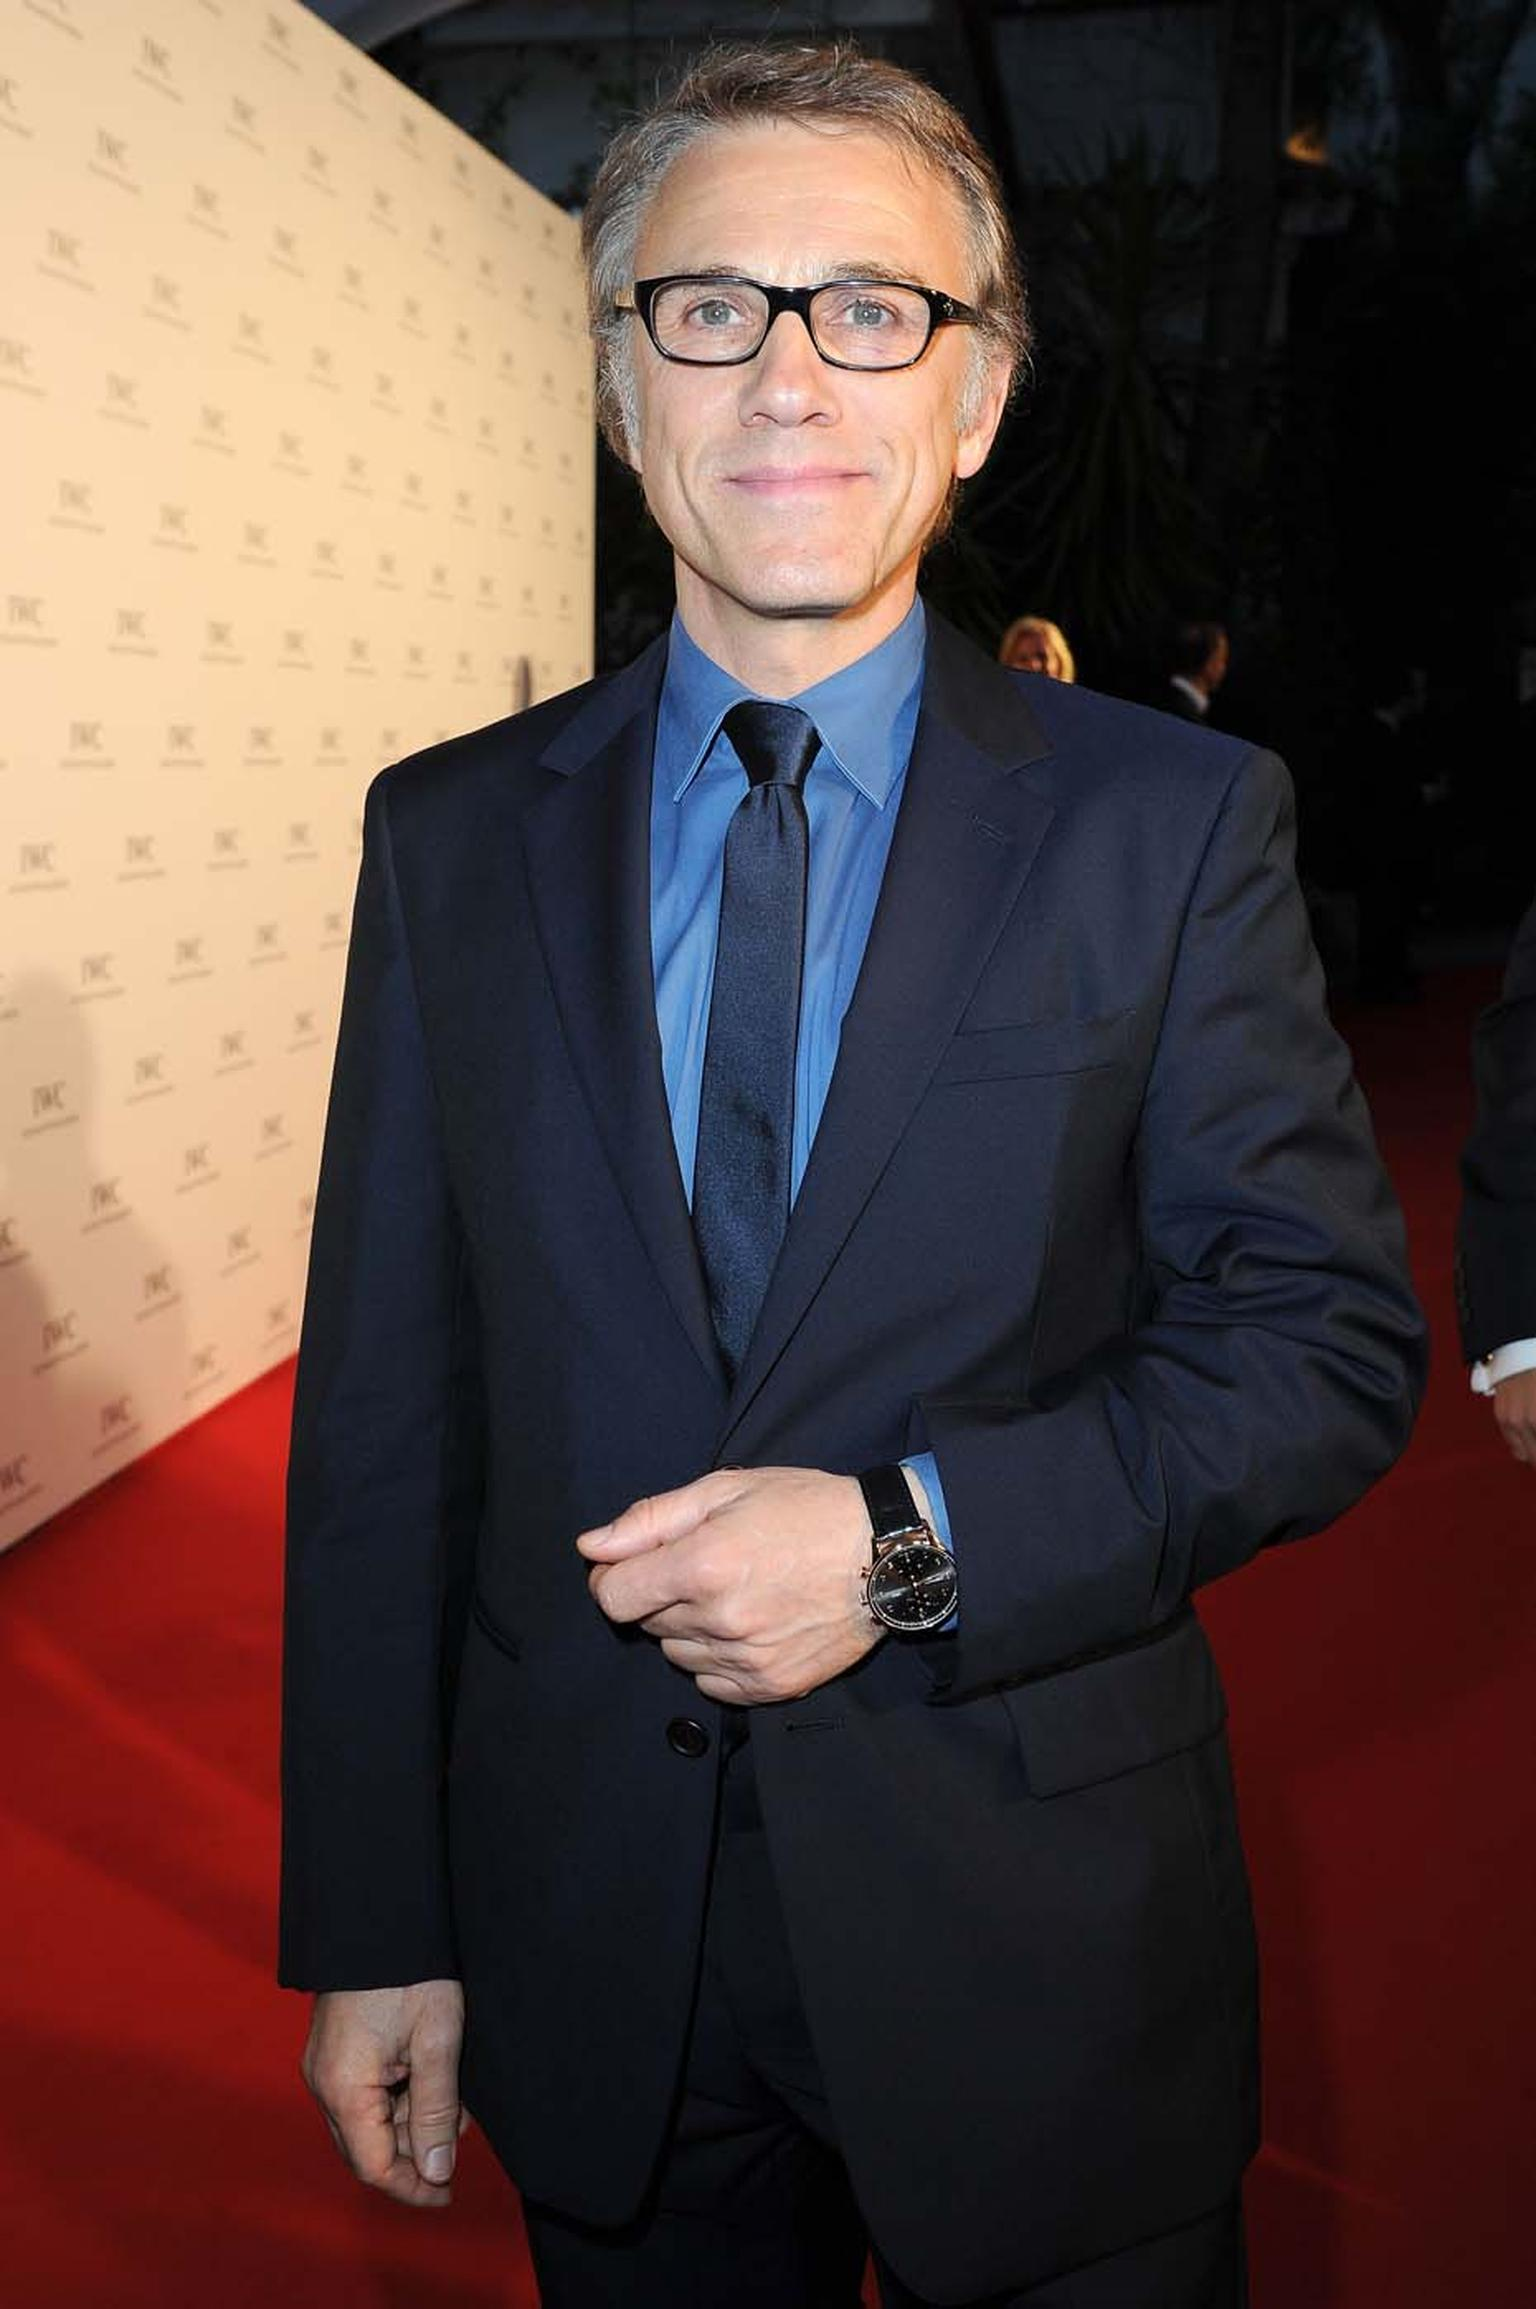 IWC has committed to supporting the BFI London Film Festival through to 2016. What's more, in 2015, IWC will be the headline sponsor of the BFI's fund raising gala Luminous to raise money for the BFI National Archive. Pictured is Christoph Waltz attending